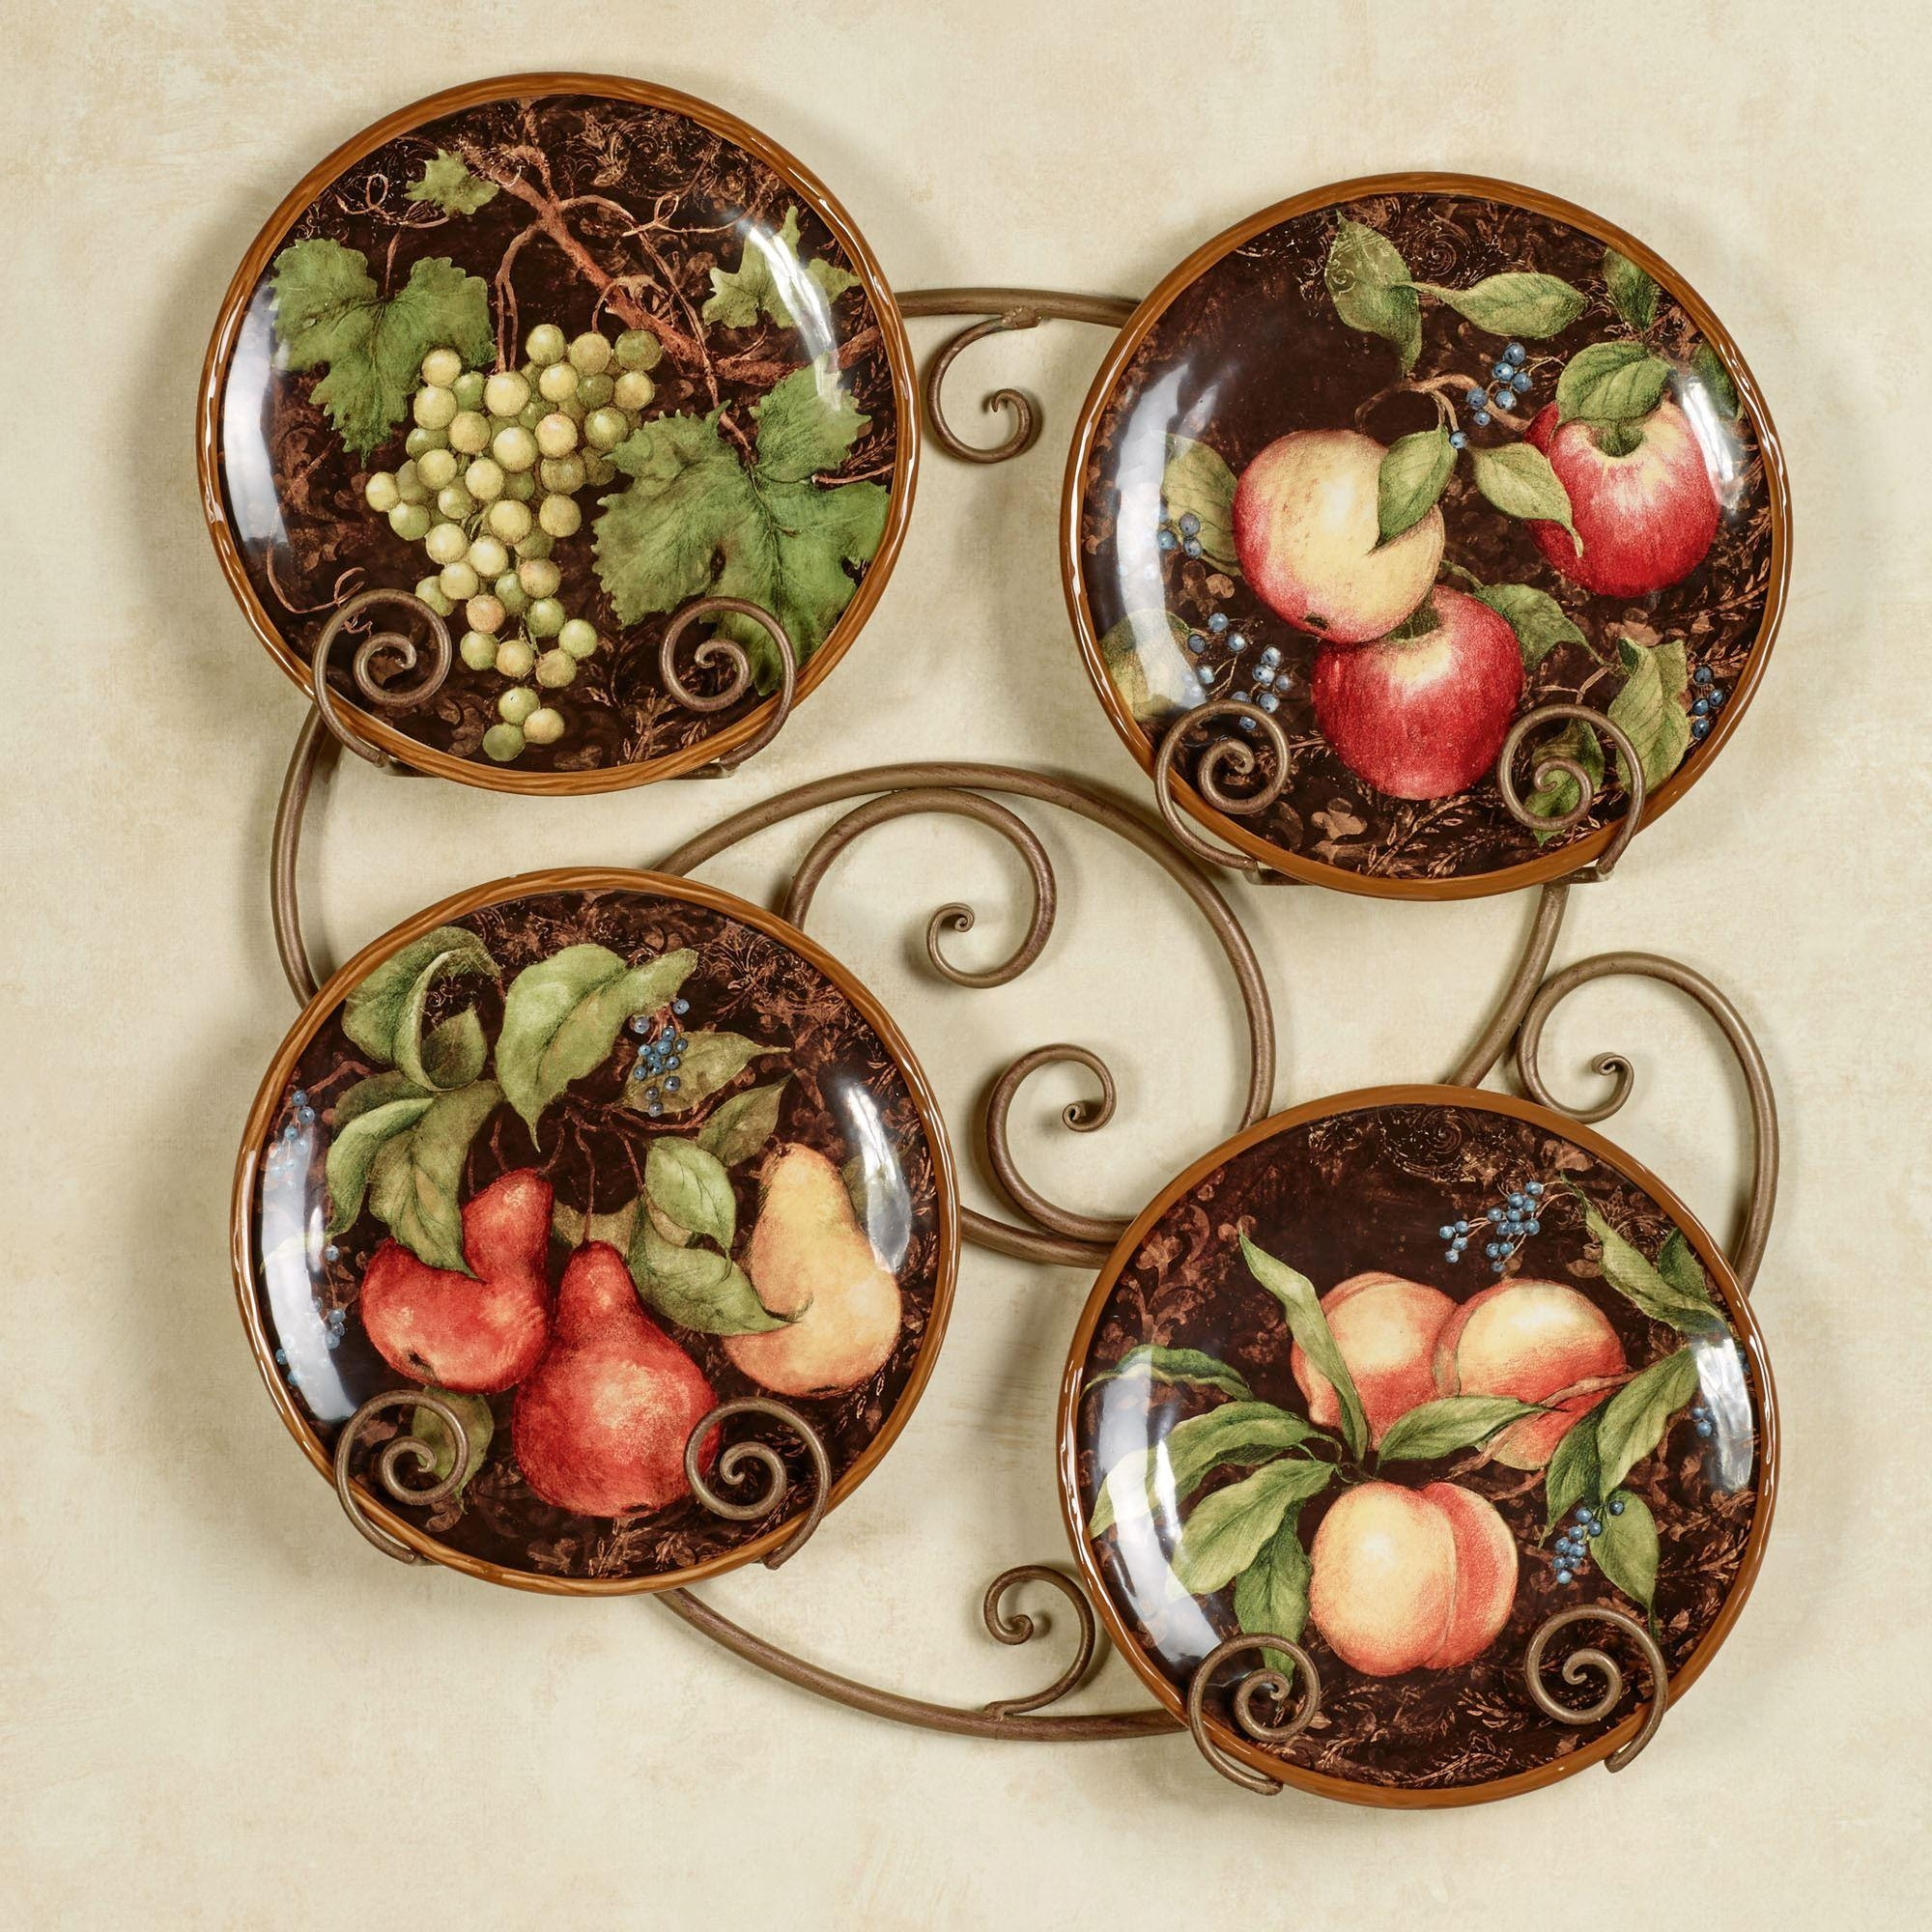 Tuscan And Italian Home Decor | Touch Of Class Within Italian Plates Wall Art (View 8 of 20)